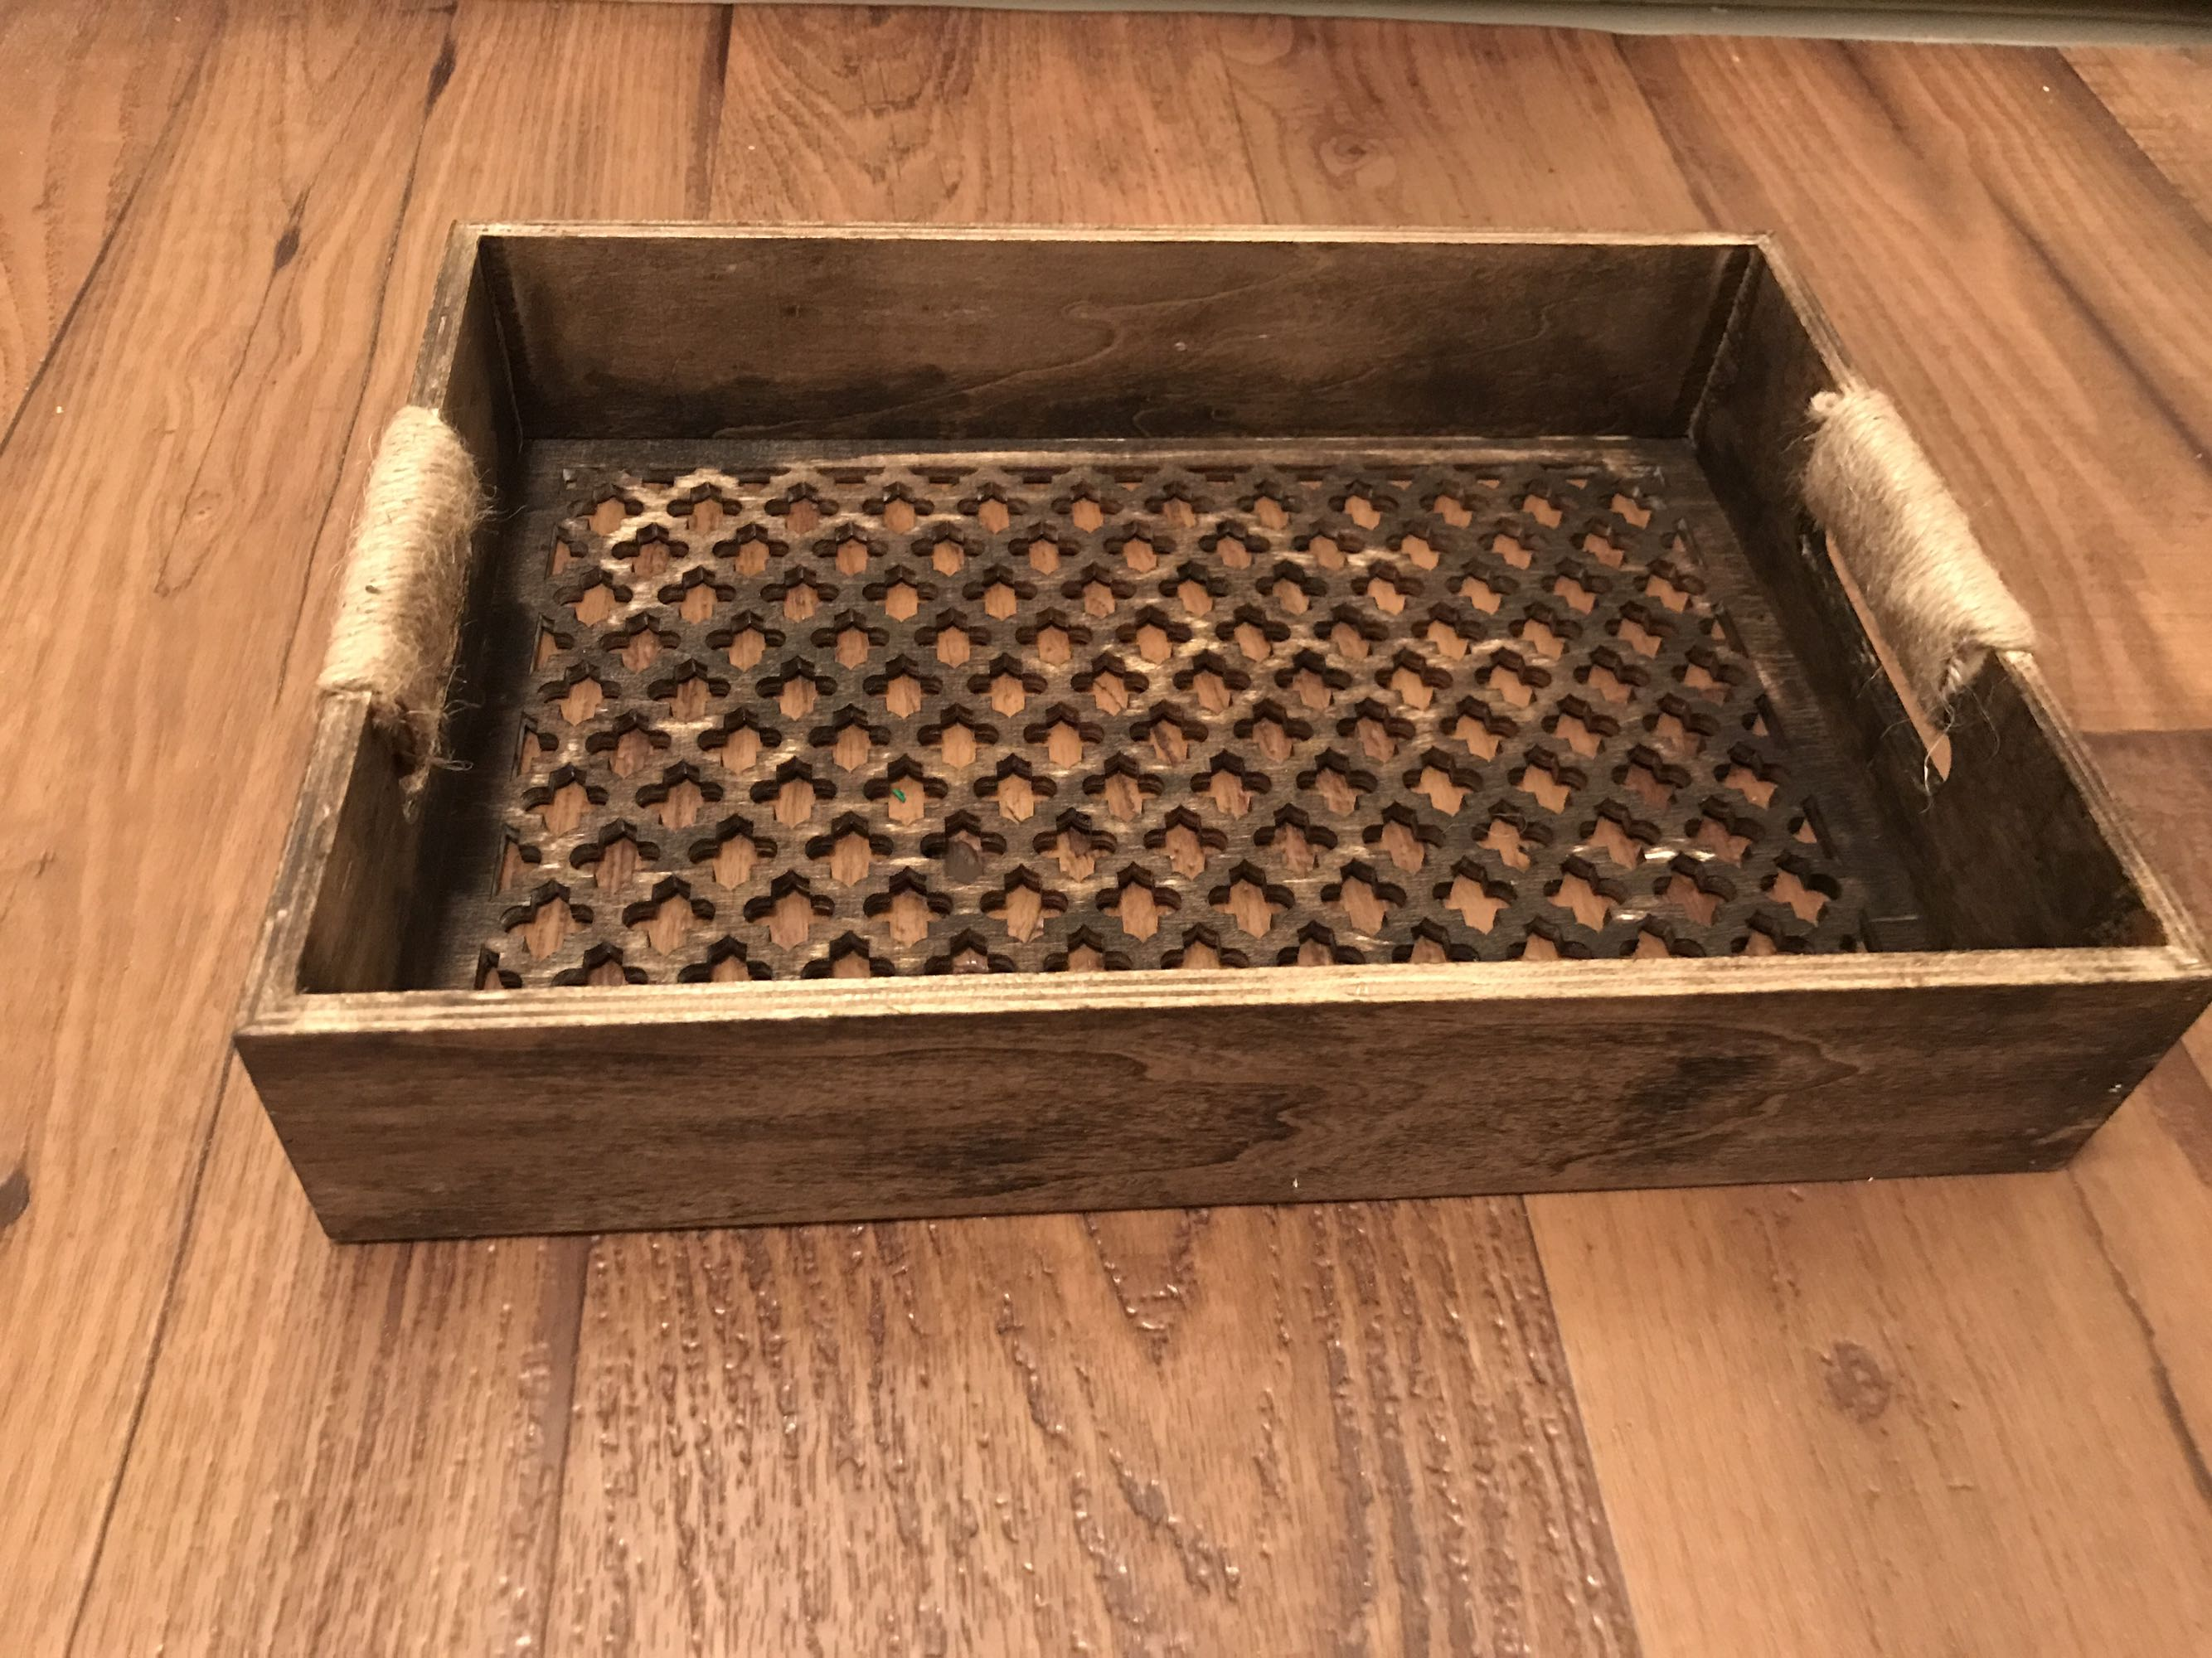 Super cute wooden tray with twine accents.